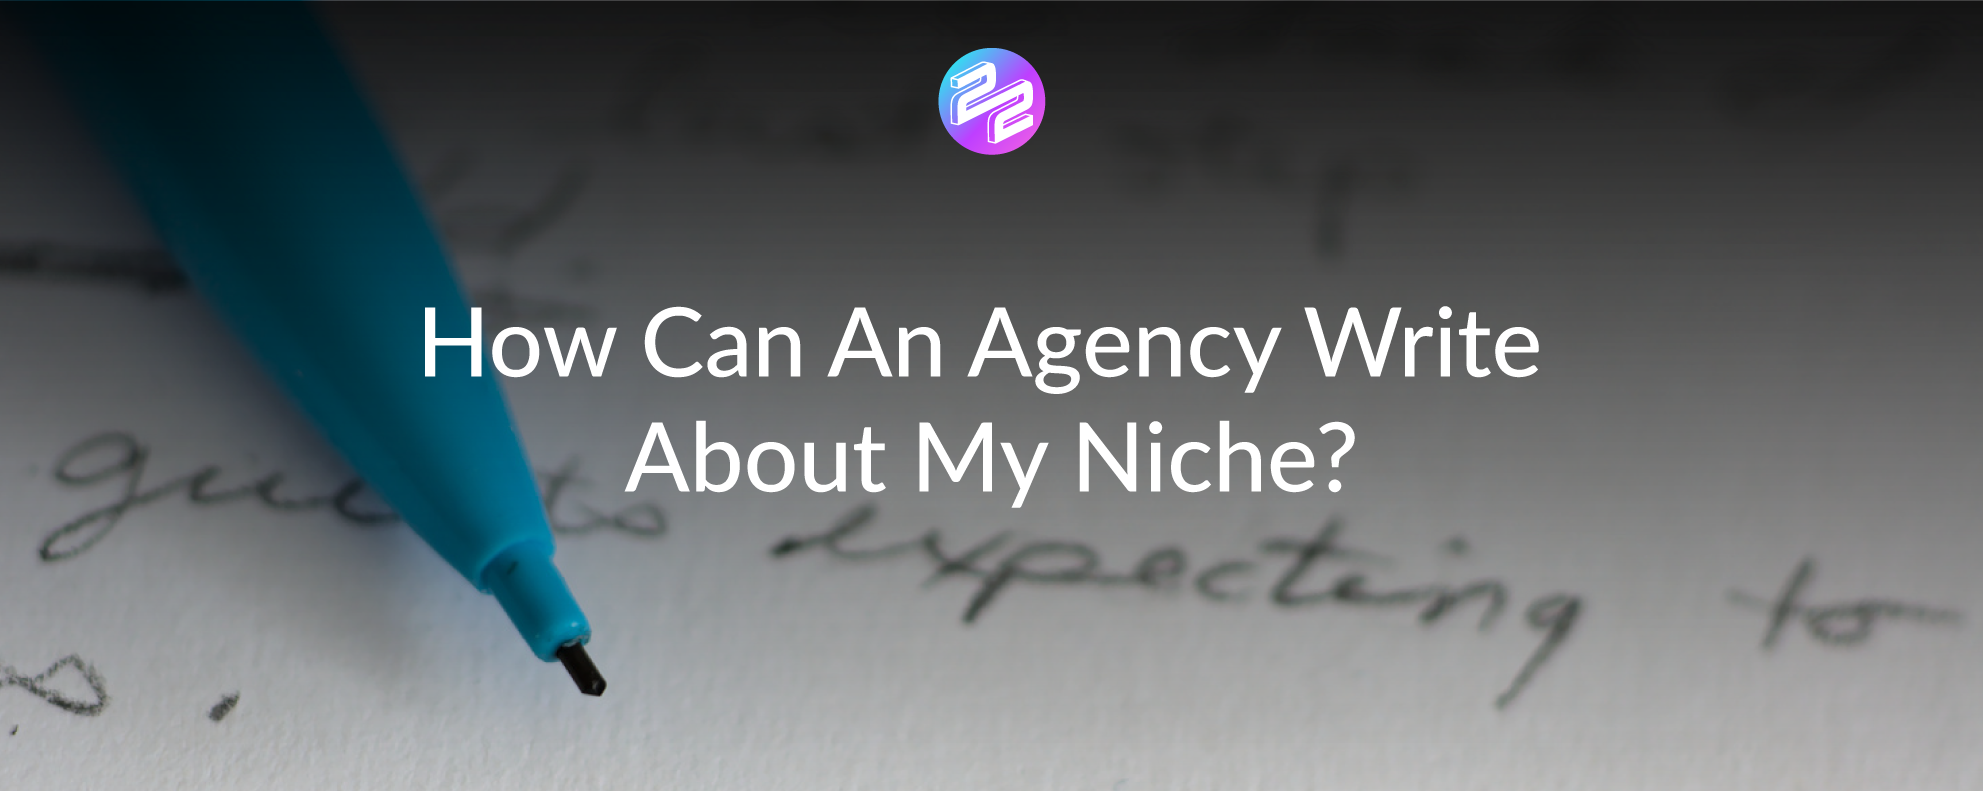 how-can-an-agency-write-about-my-niche